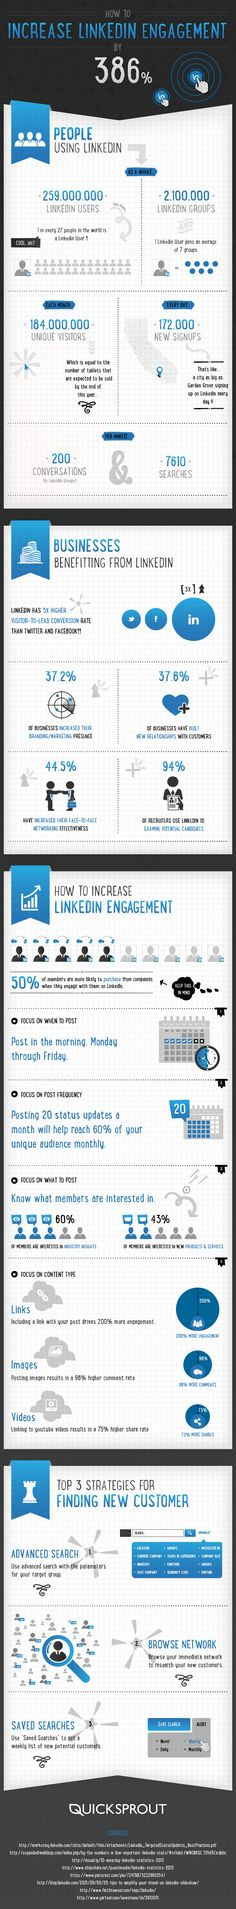 How to Increase Your LinkedIn Engagement by 386%   #infographic #LinkedIn #SocialMedia